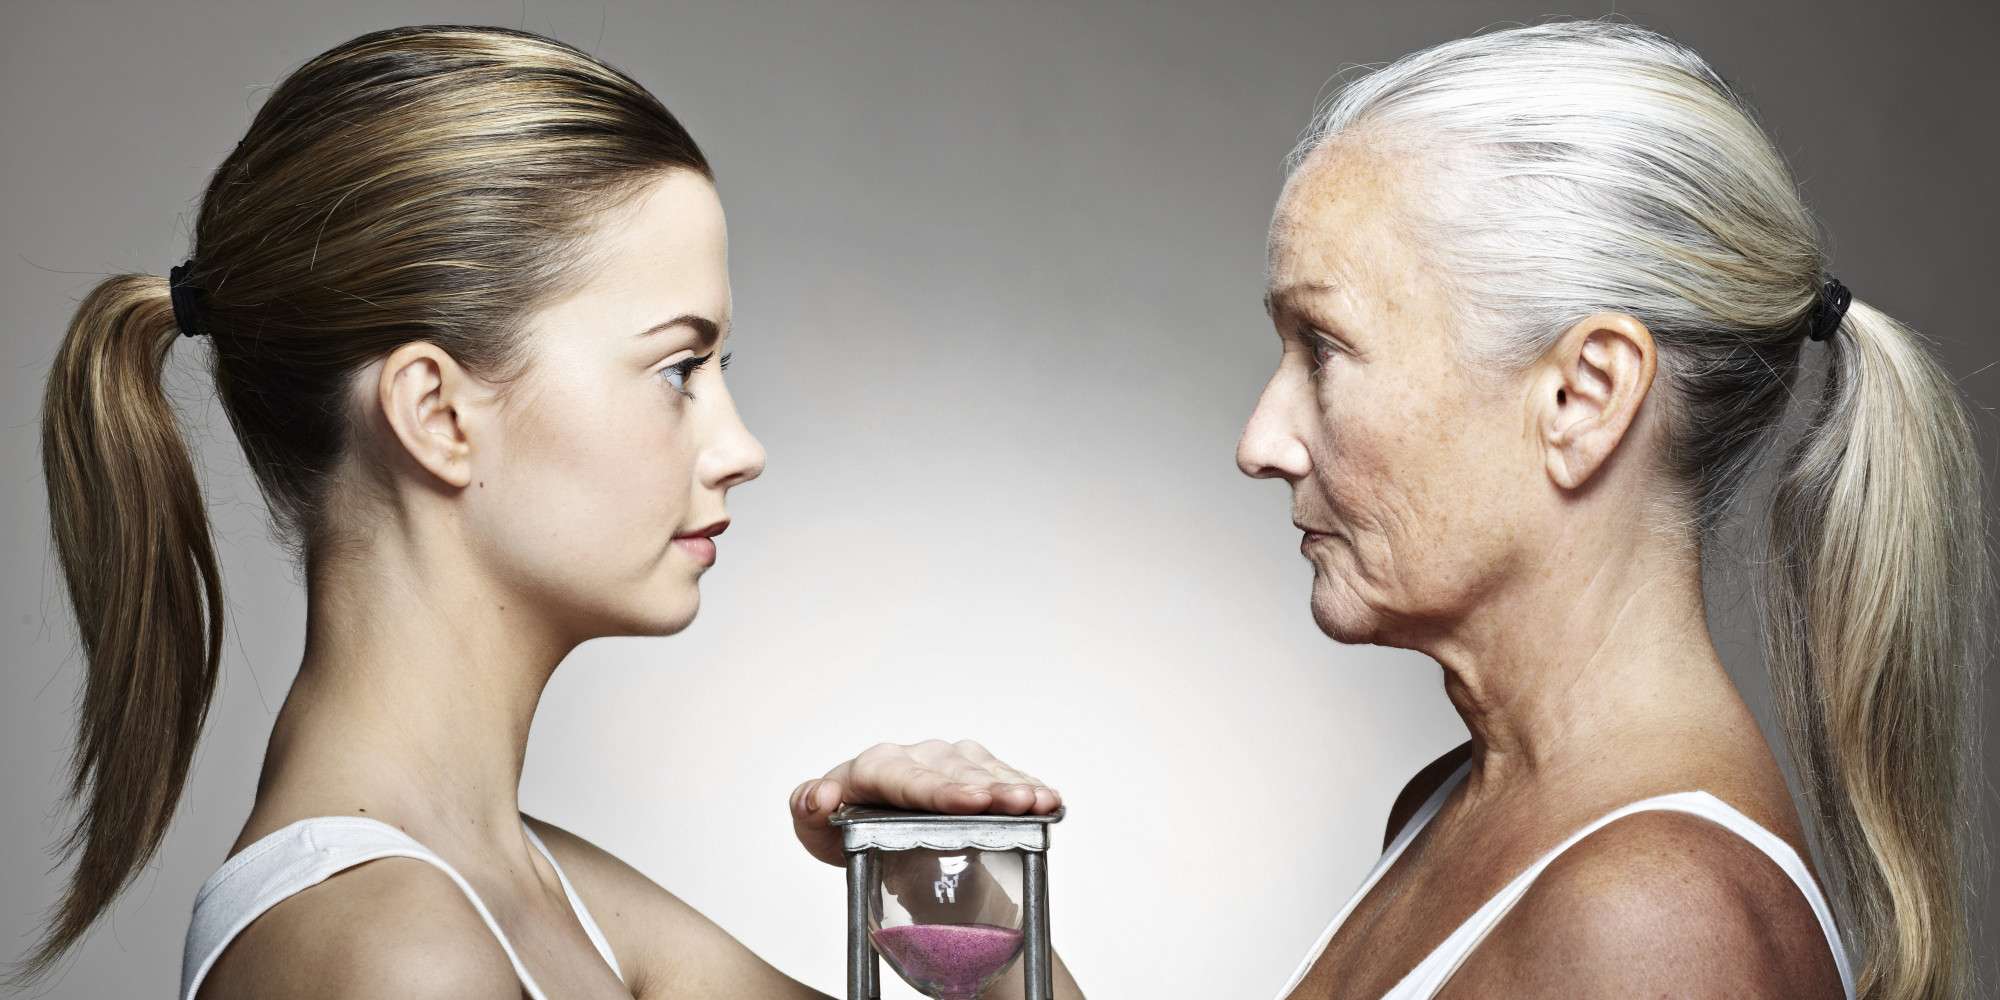 Does Your Feeling About Your Age Affect Your Health and Risk of Illness?